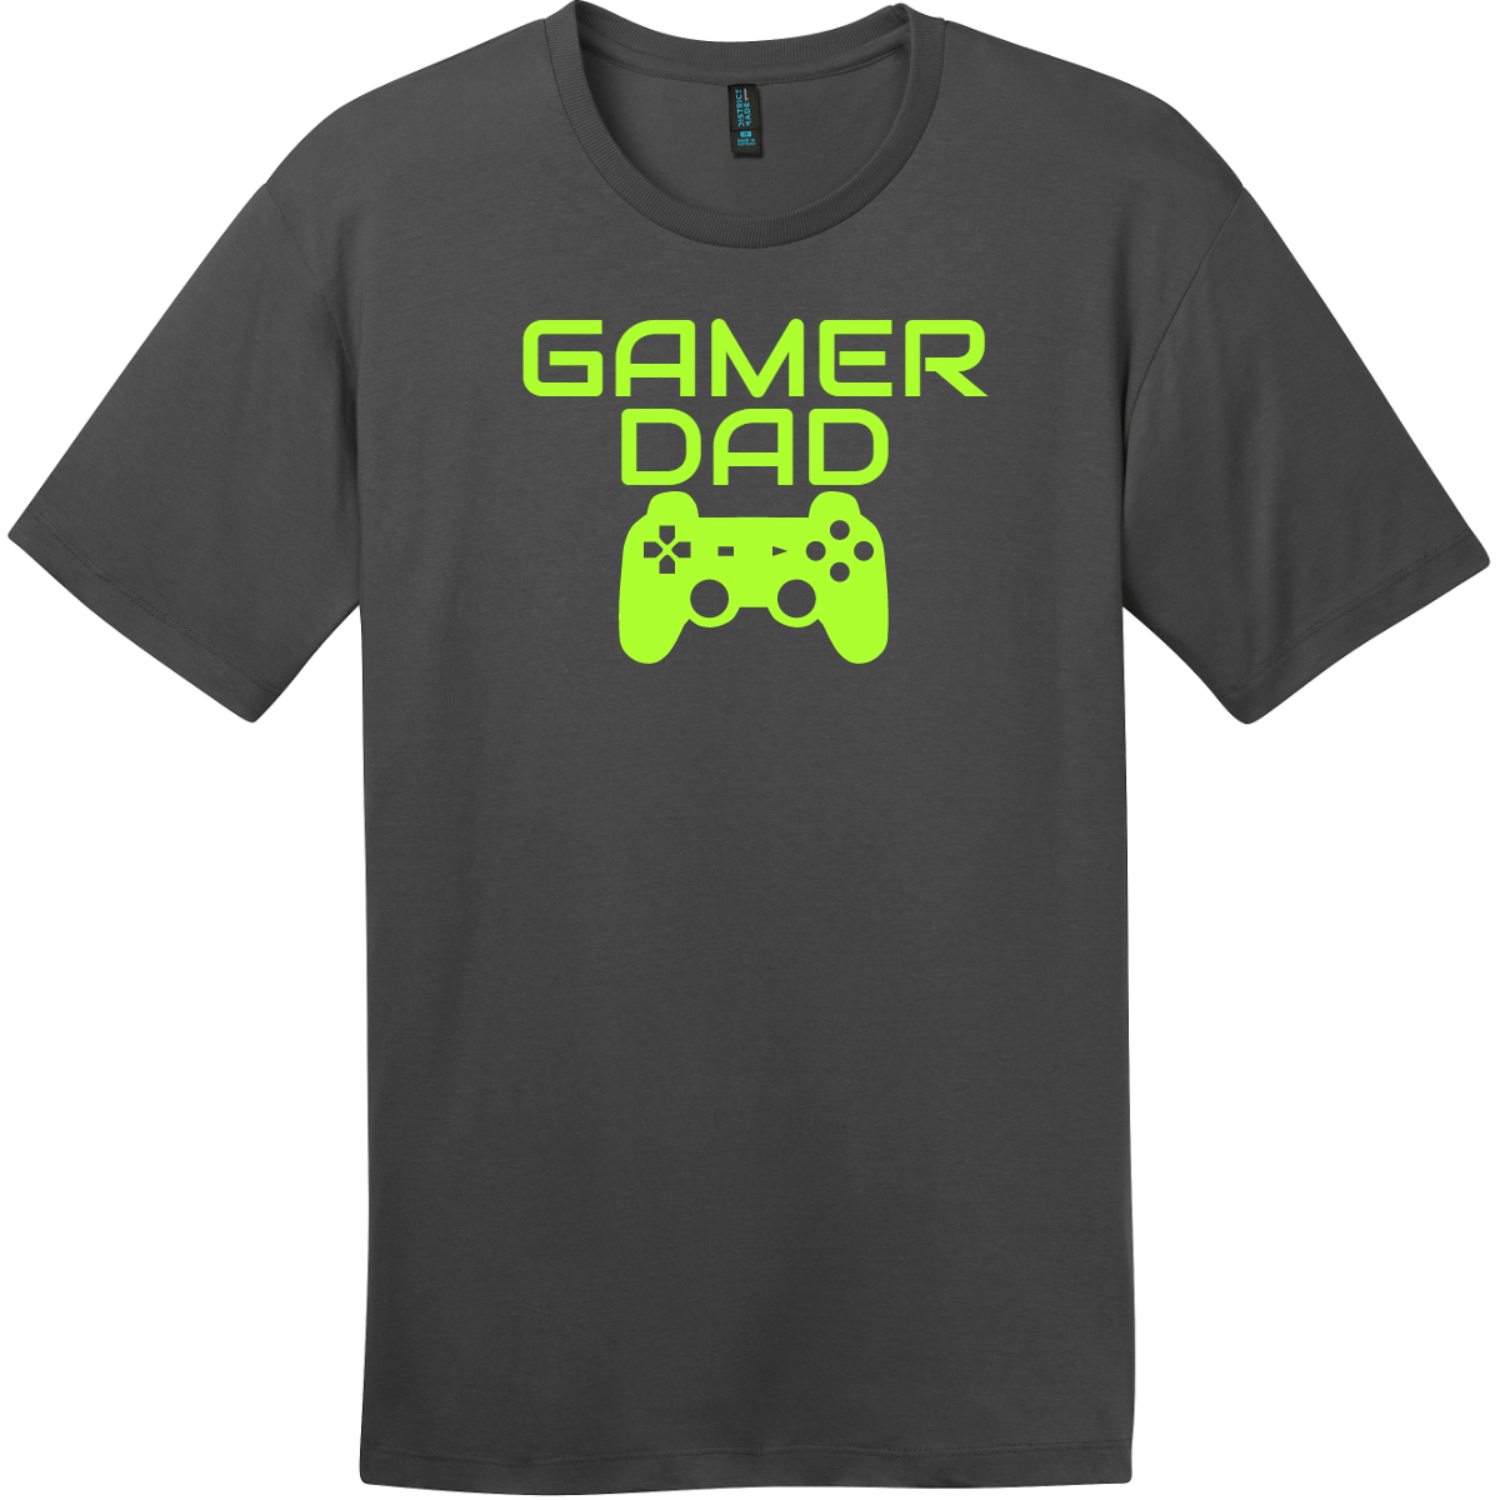 Gamer Dad T-Shirt Charcoal District Perfect Weight Tee DT104